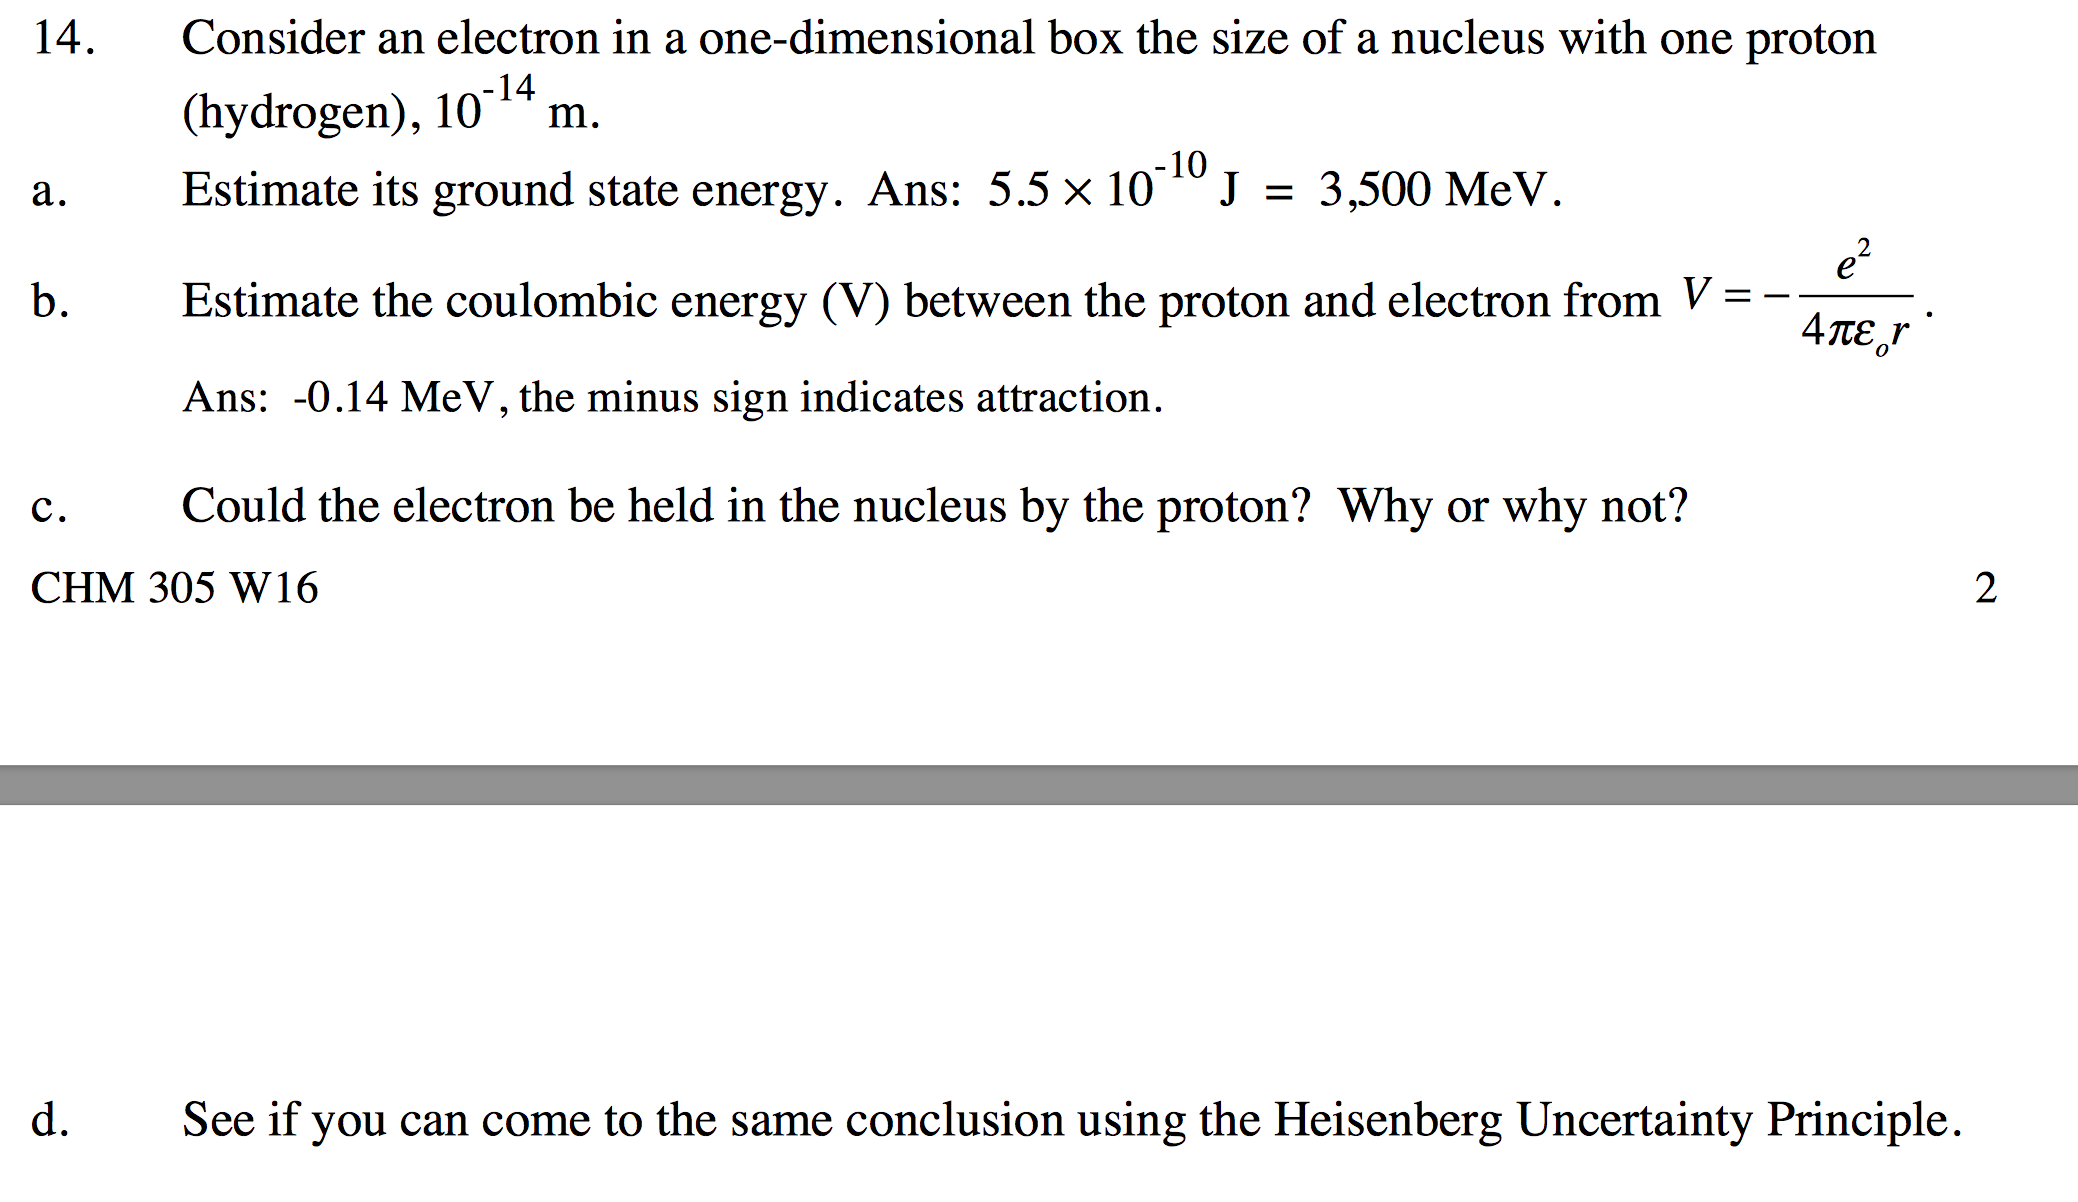 Consider An Electron In A One-dimensional Box The ...   Chegg.com